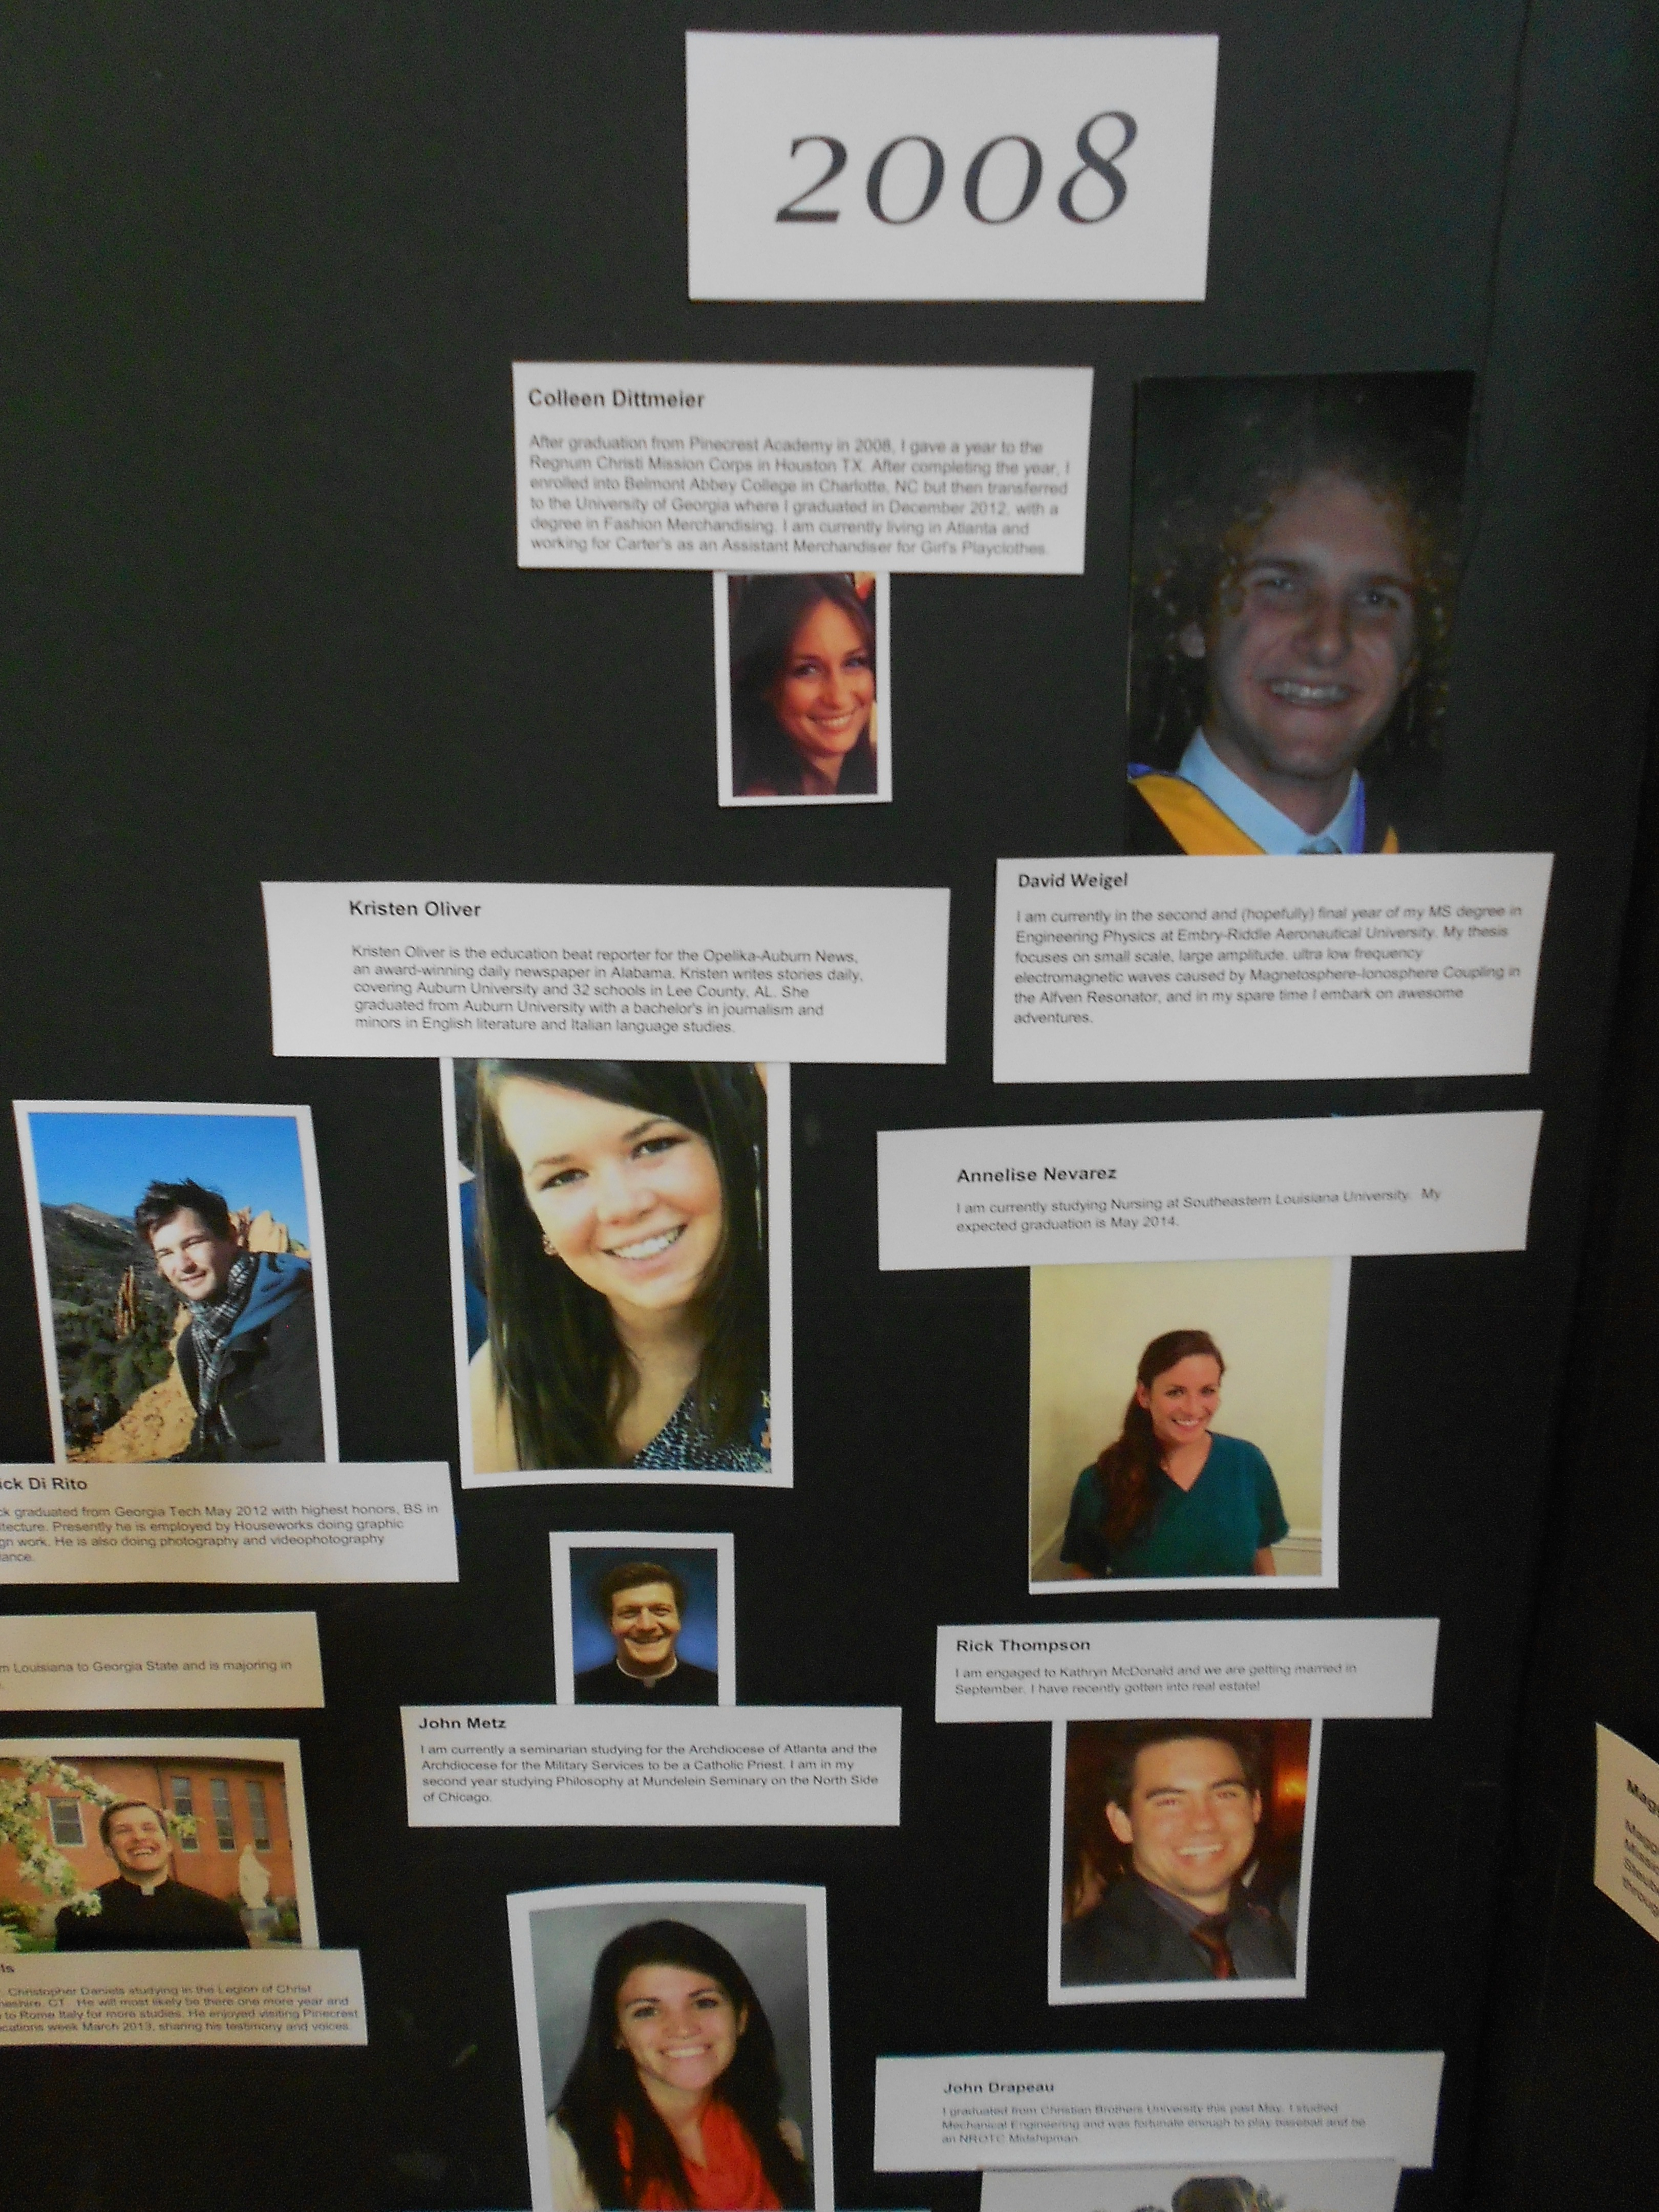 Display board of leaders at Pinecrest anniversary museum.